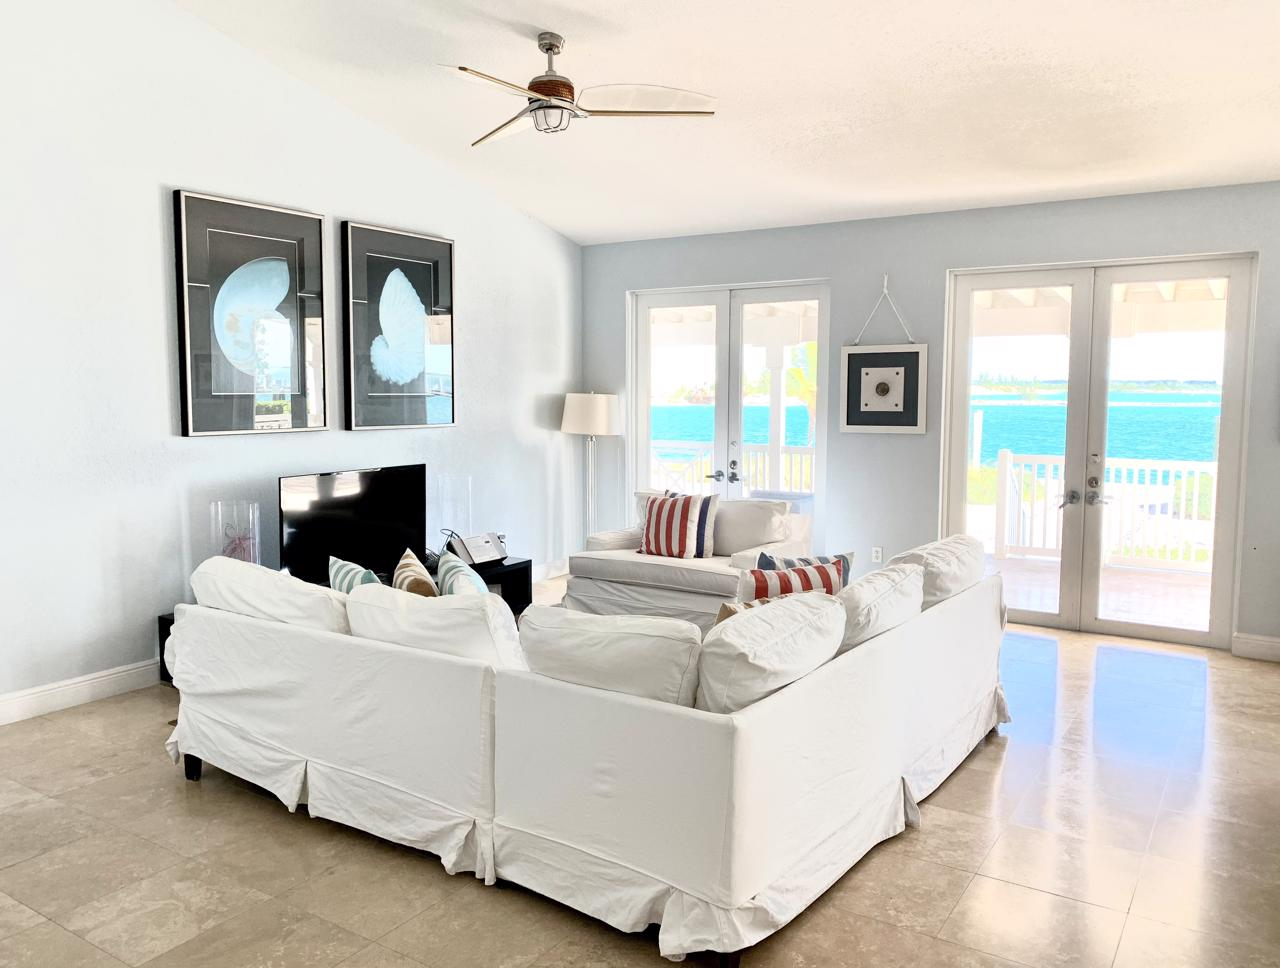 Bimini bayfront home with dockage.